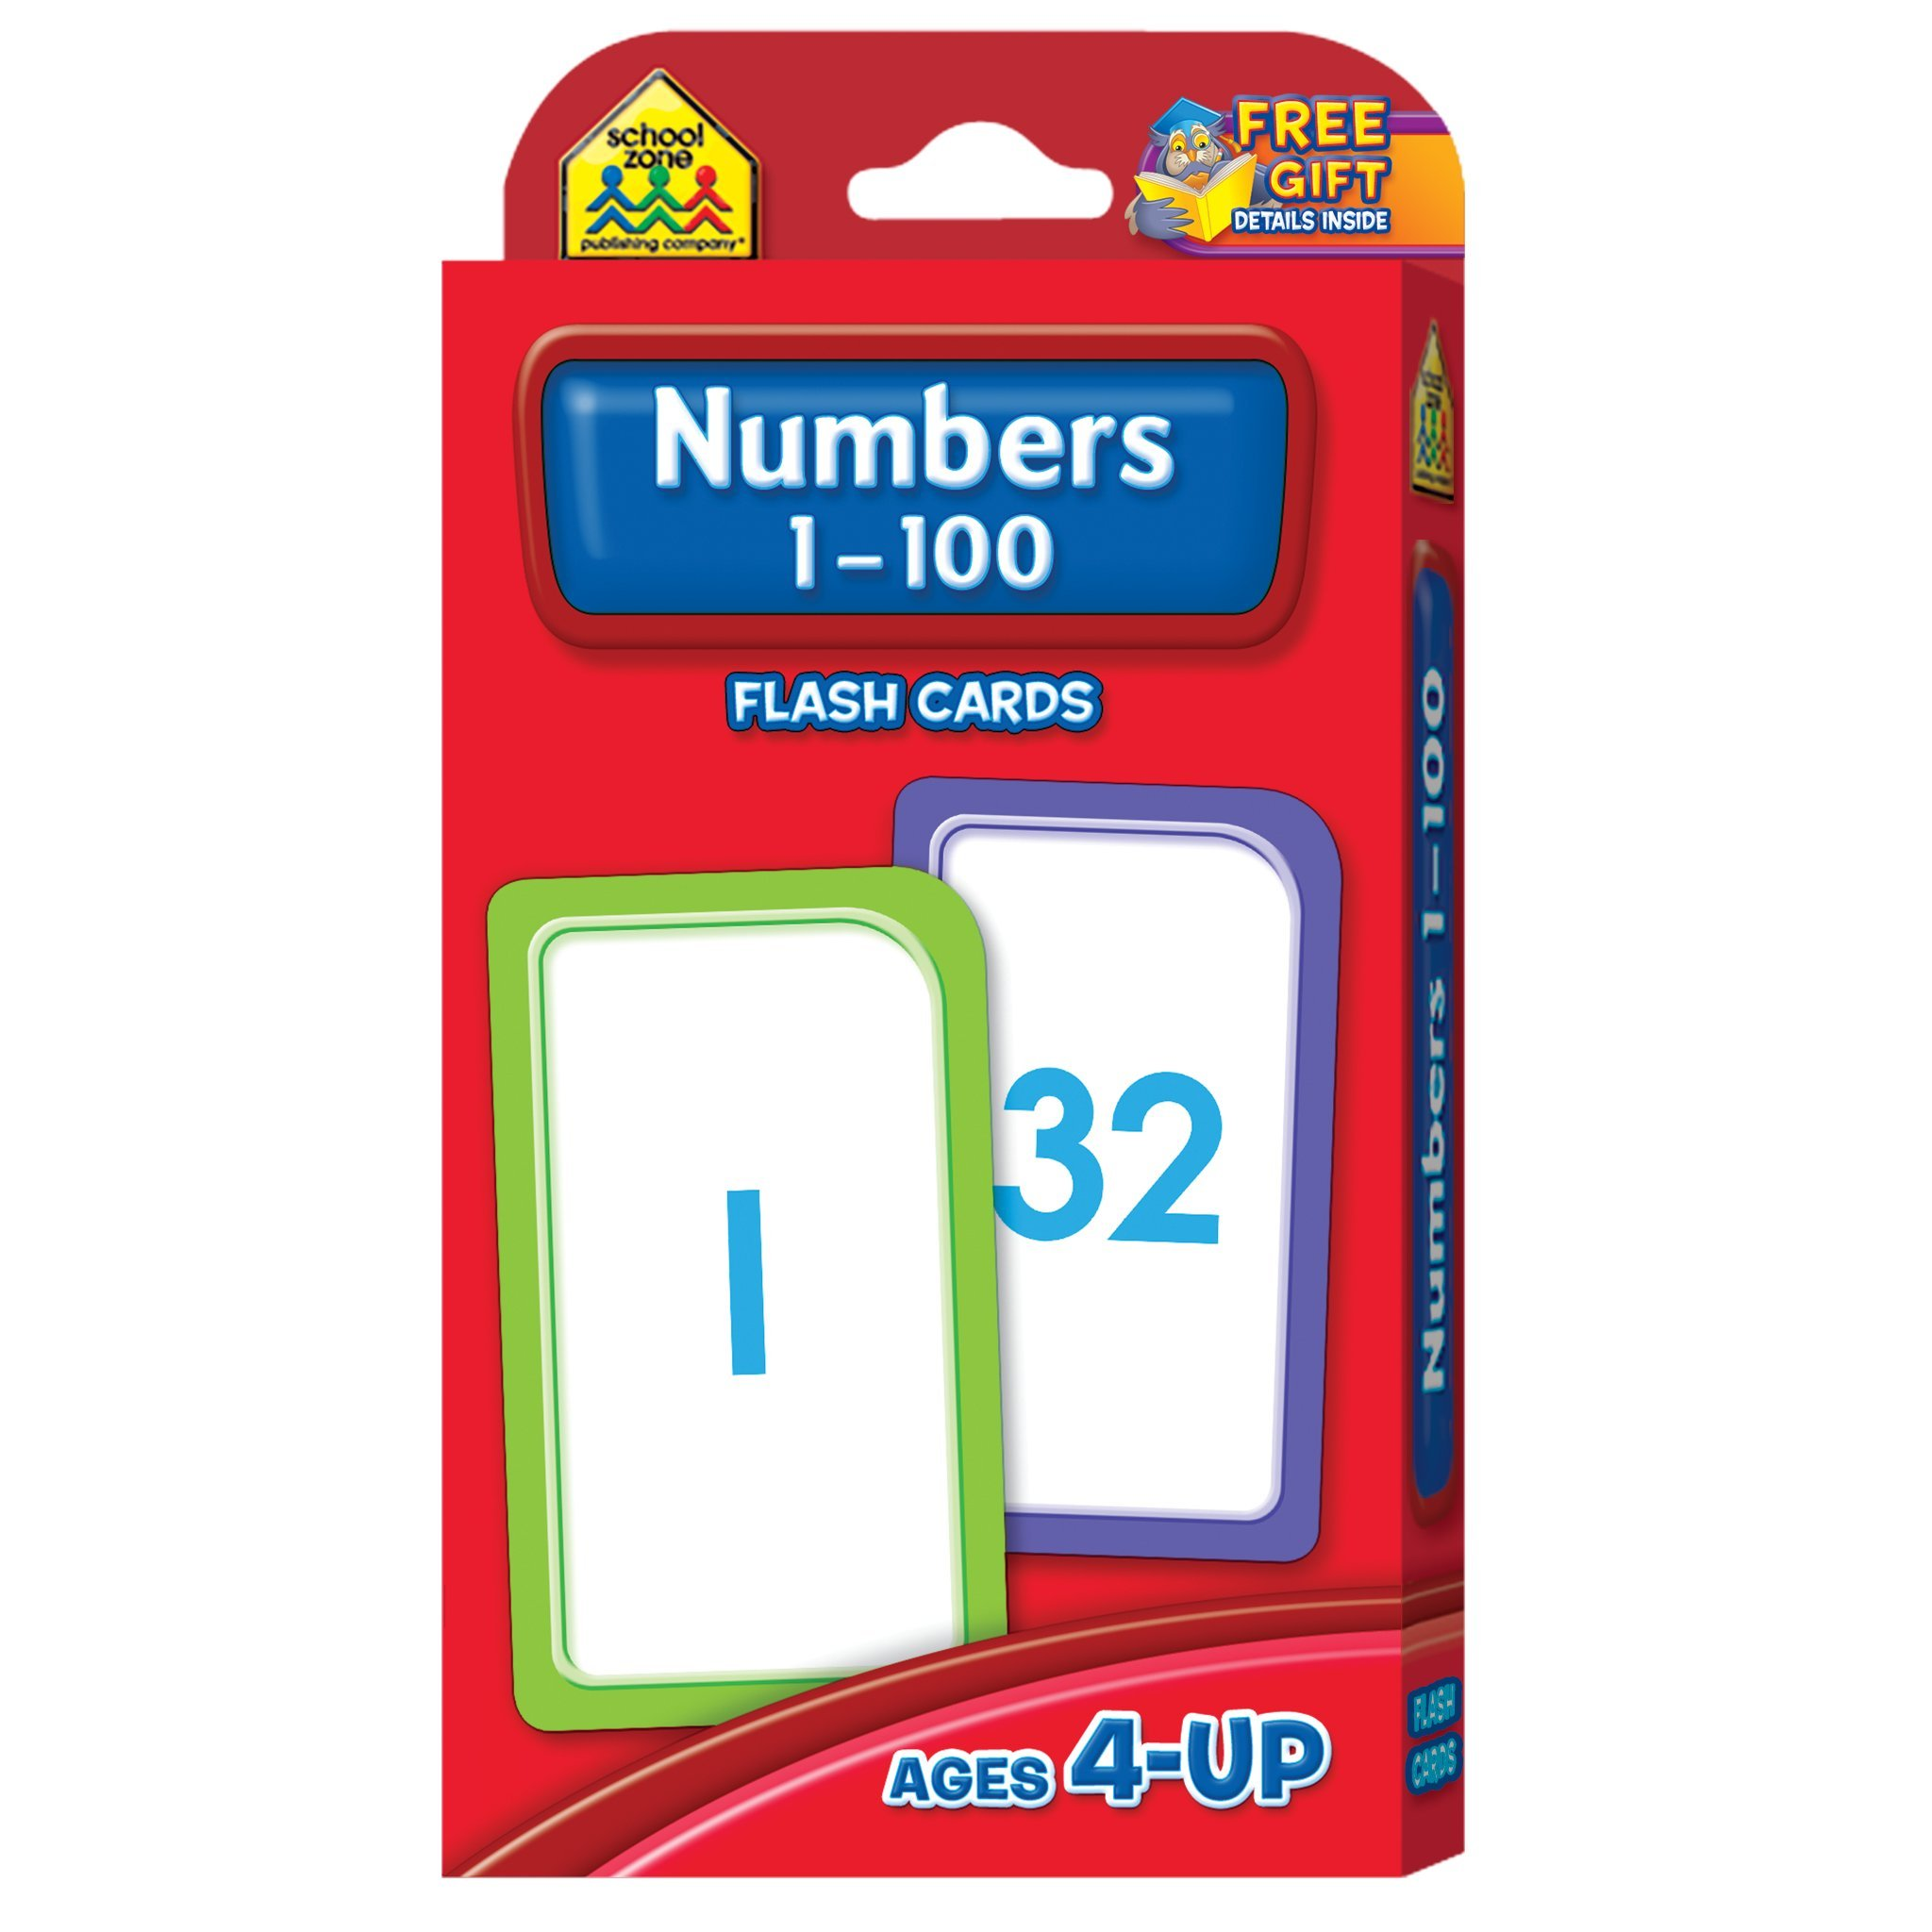 Numbers 1 100 Flash Cards product image